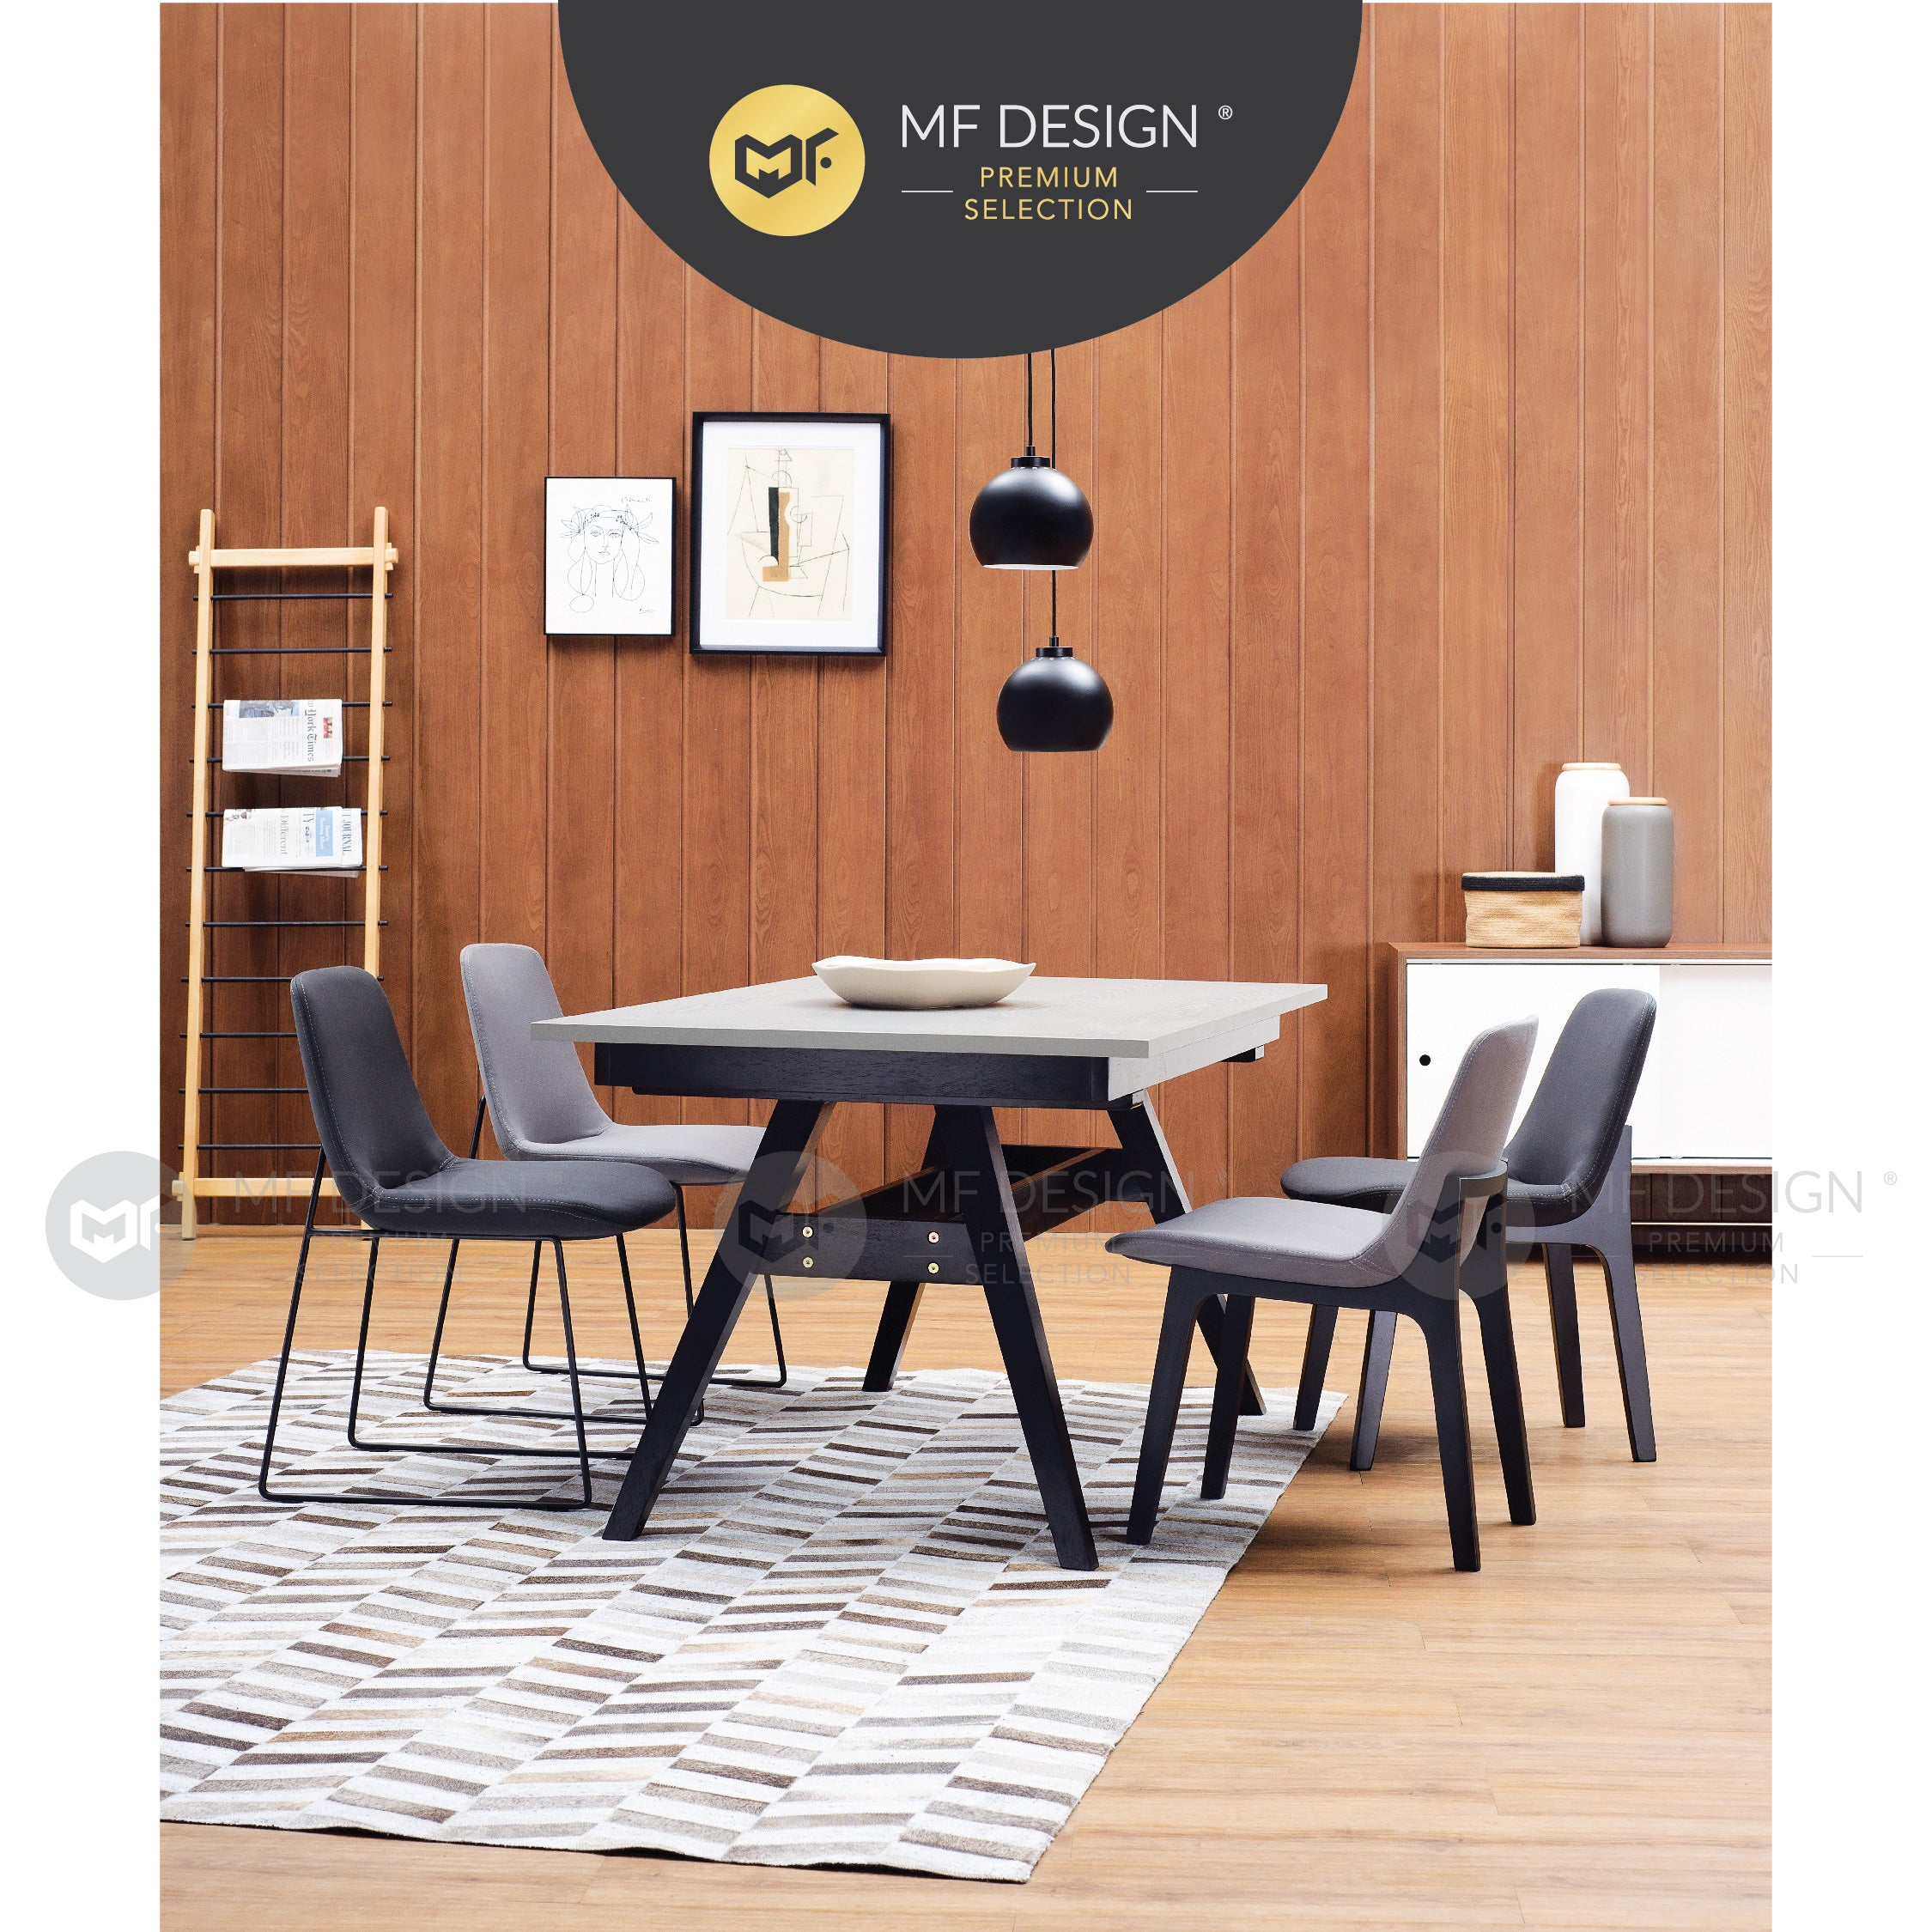 MFD Premium Amelia Dining Chair / kerusi / chair